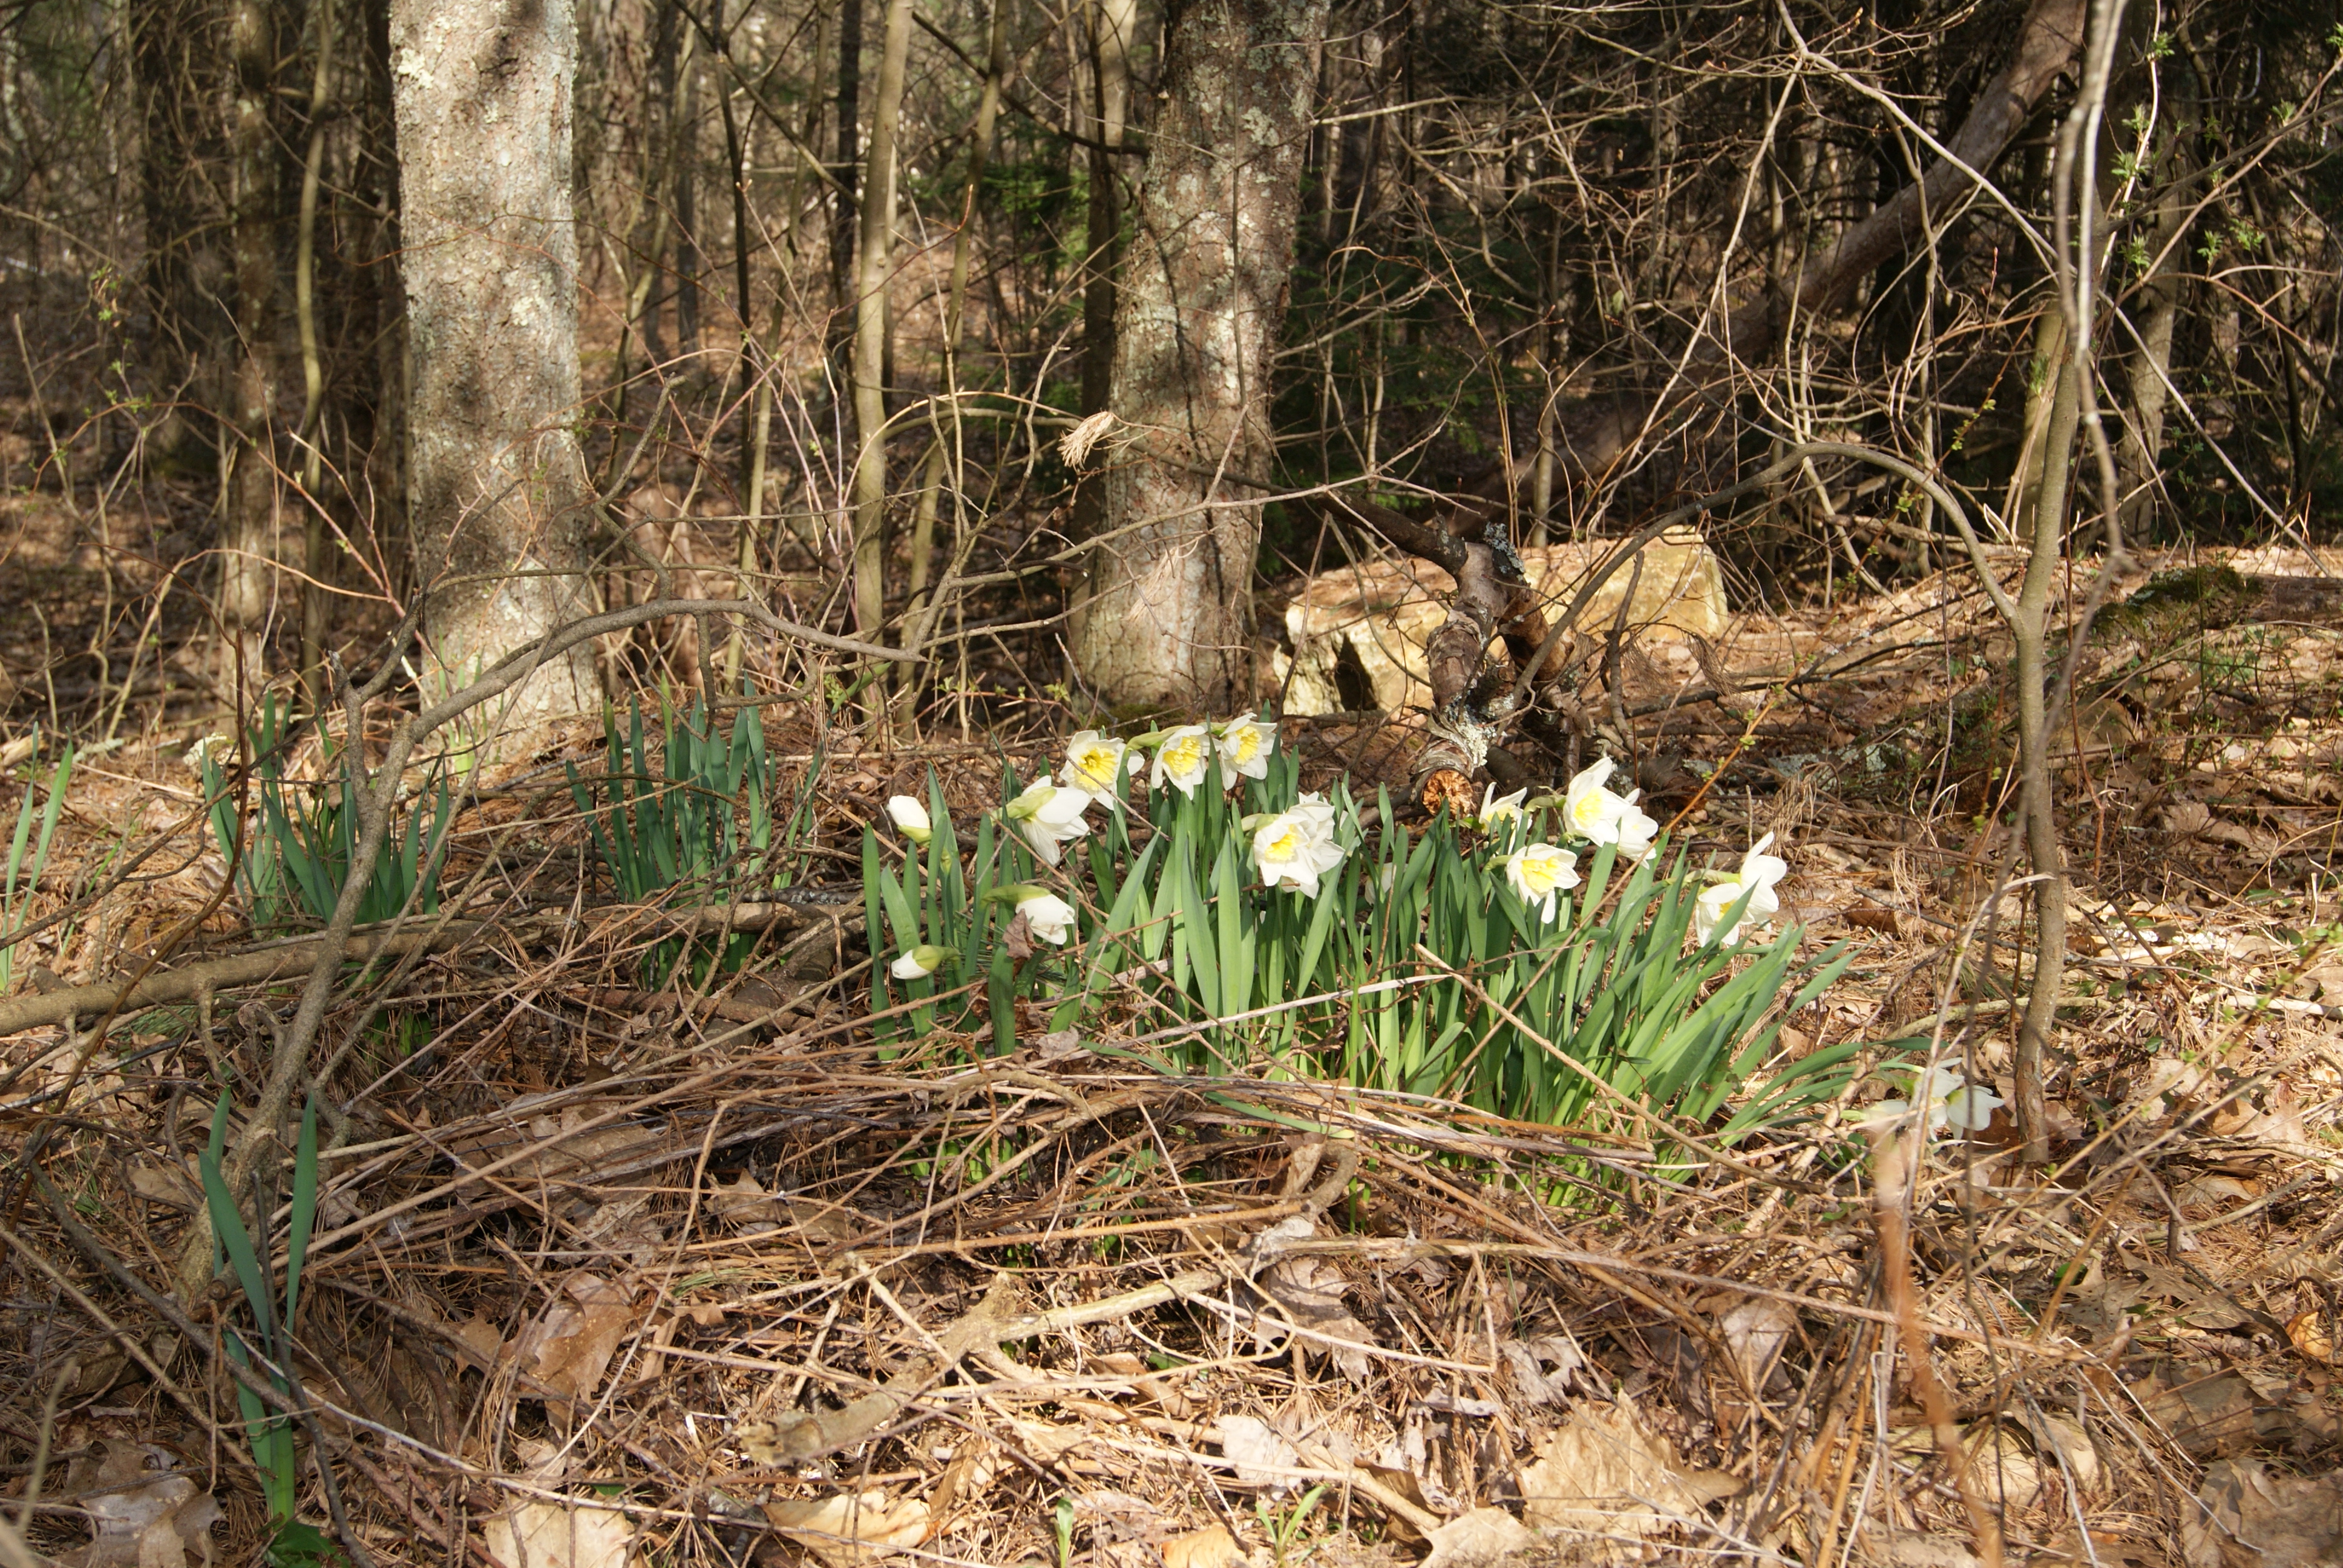 Daffodil patch in the middle of the woods.